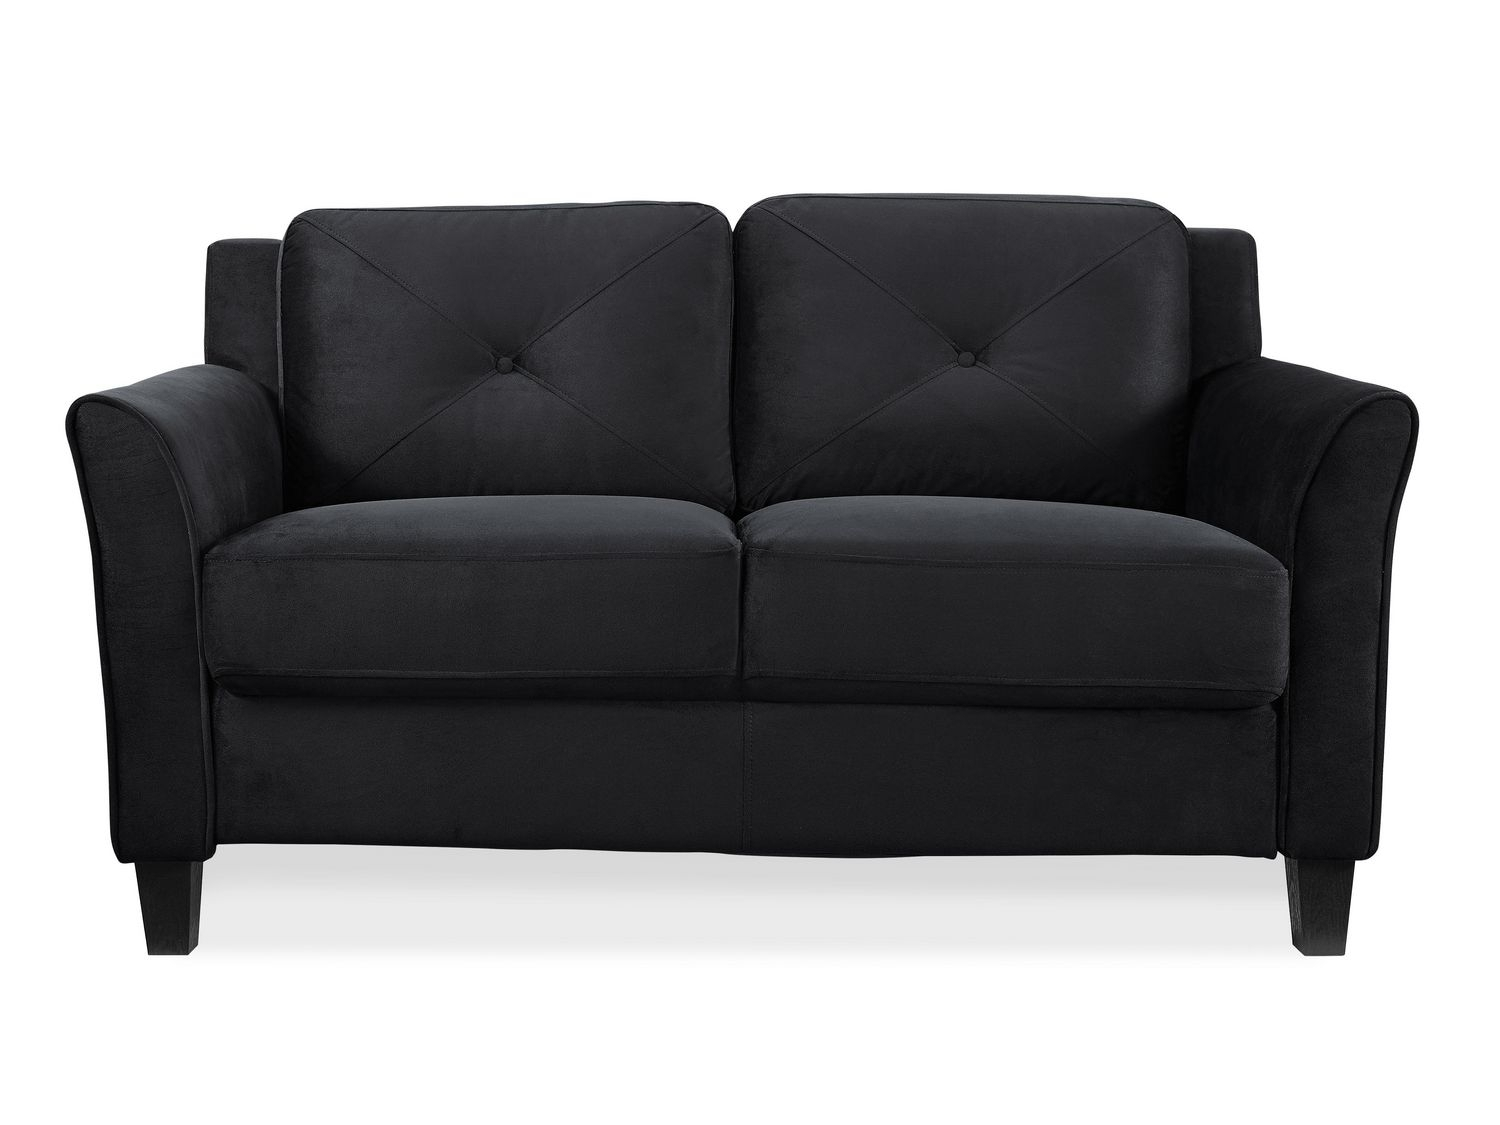 Sectional Sofas & Living Room Sets For Home | Walmart Canada Intended For Sectional Sofas At Walmart (View 9 of 10)